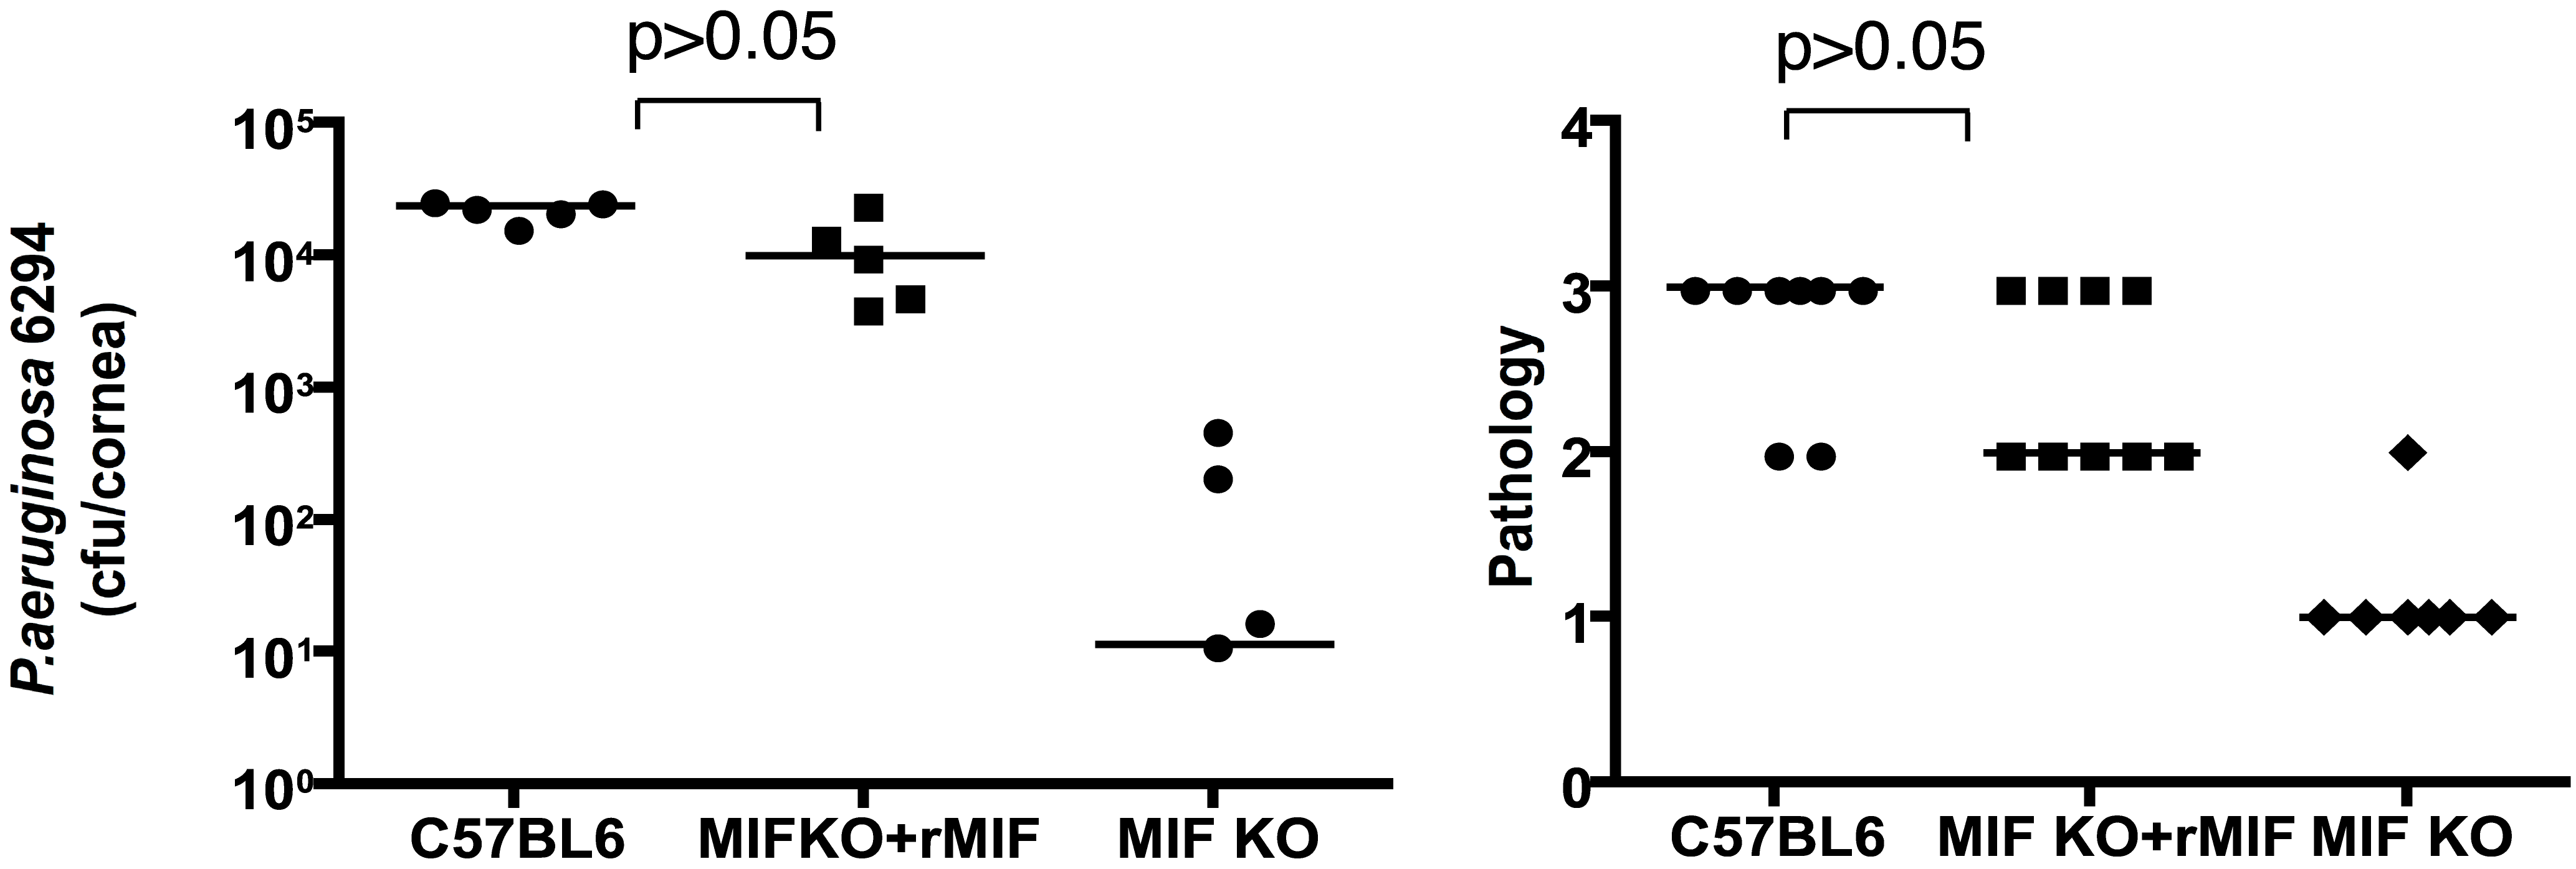 rMIF restores sensitivity to <i>P. aeruginosa</i>-induced disease in MIF KO mice.